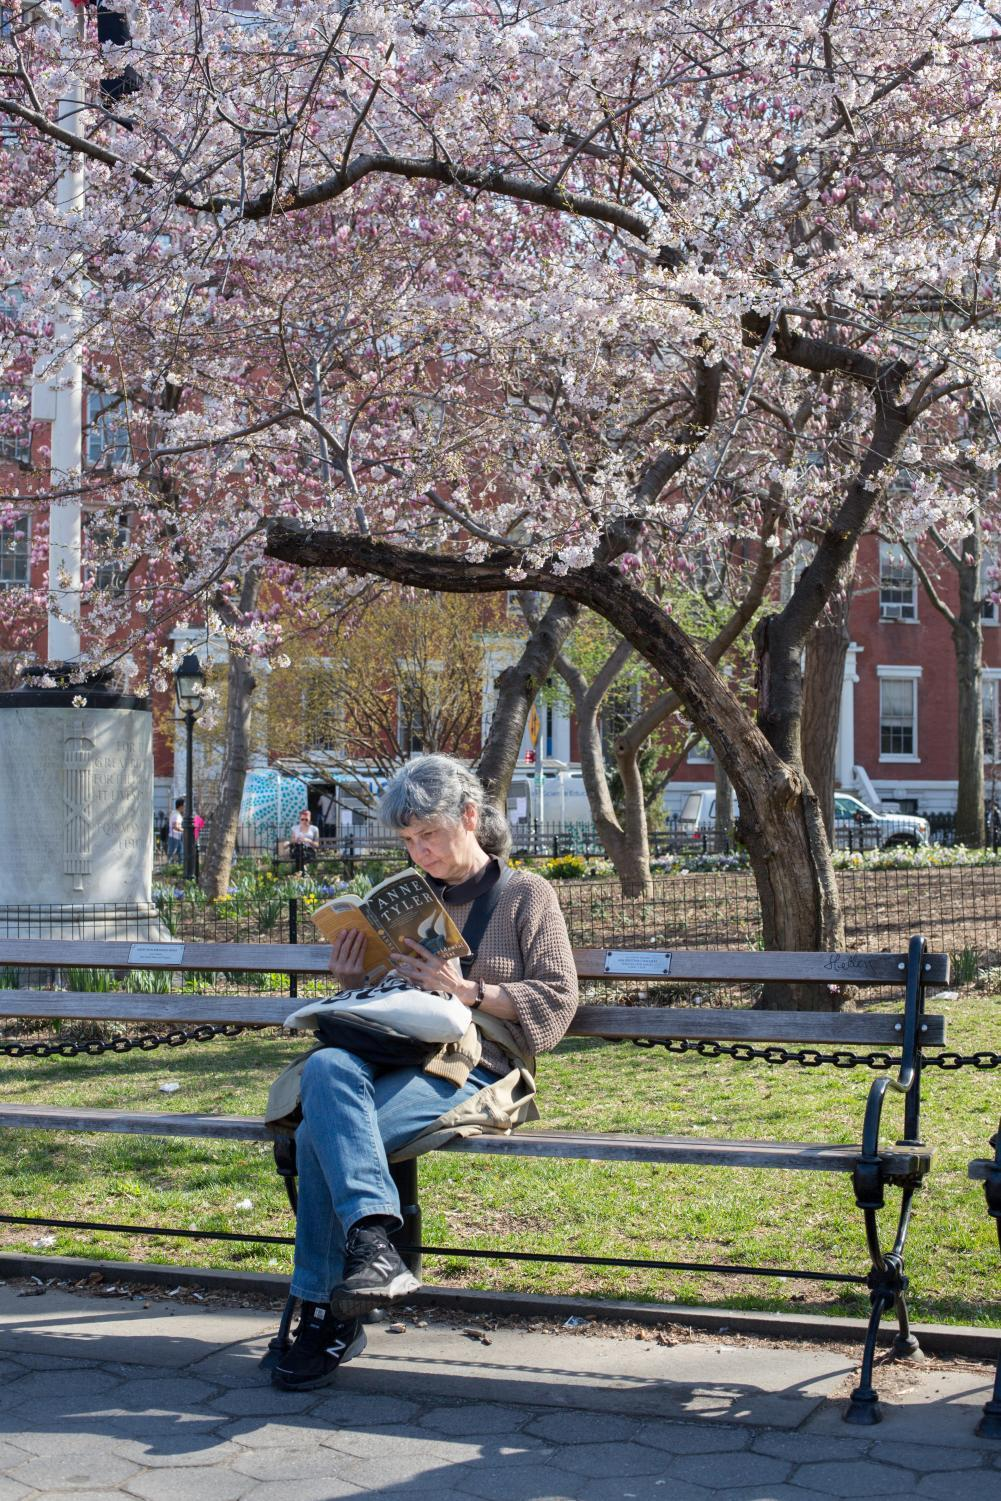 A woman reads a book under a cherry blossom tree in Washington Square Park.